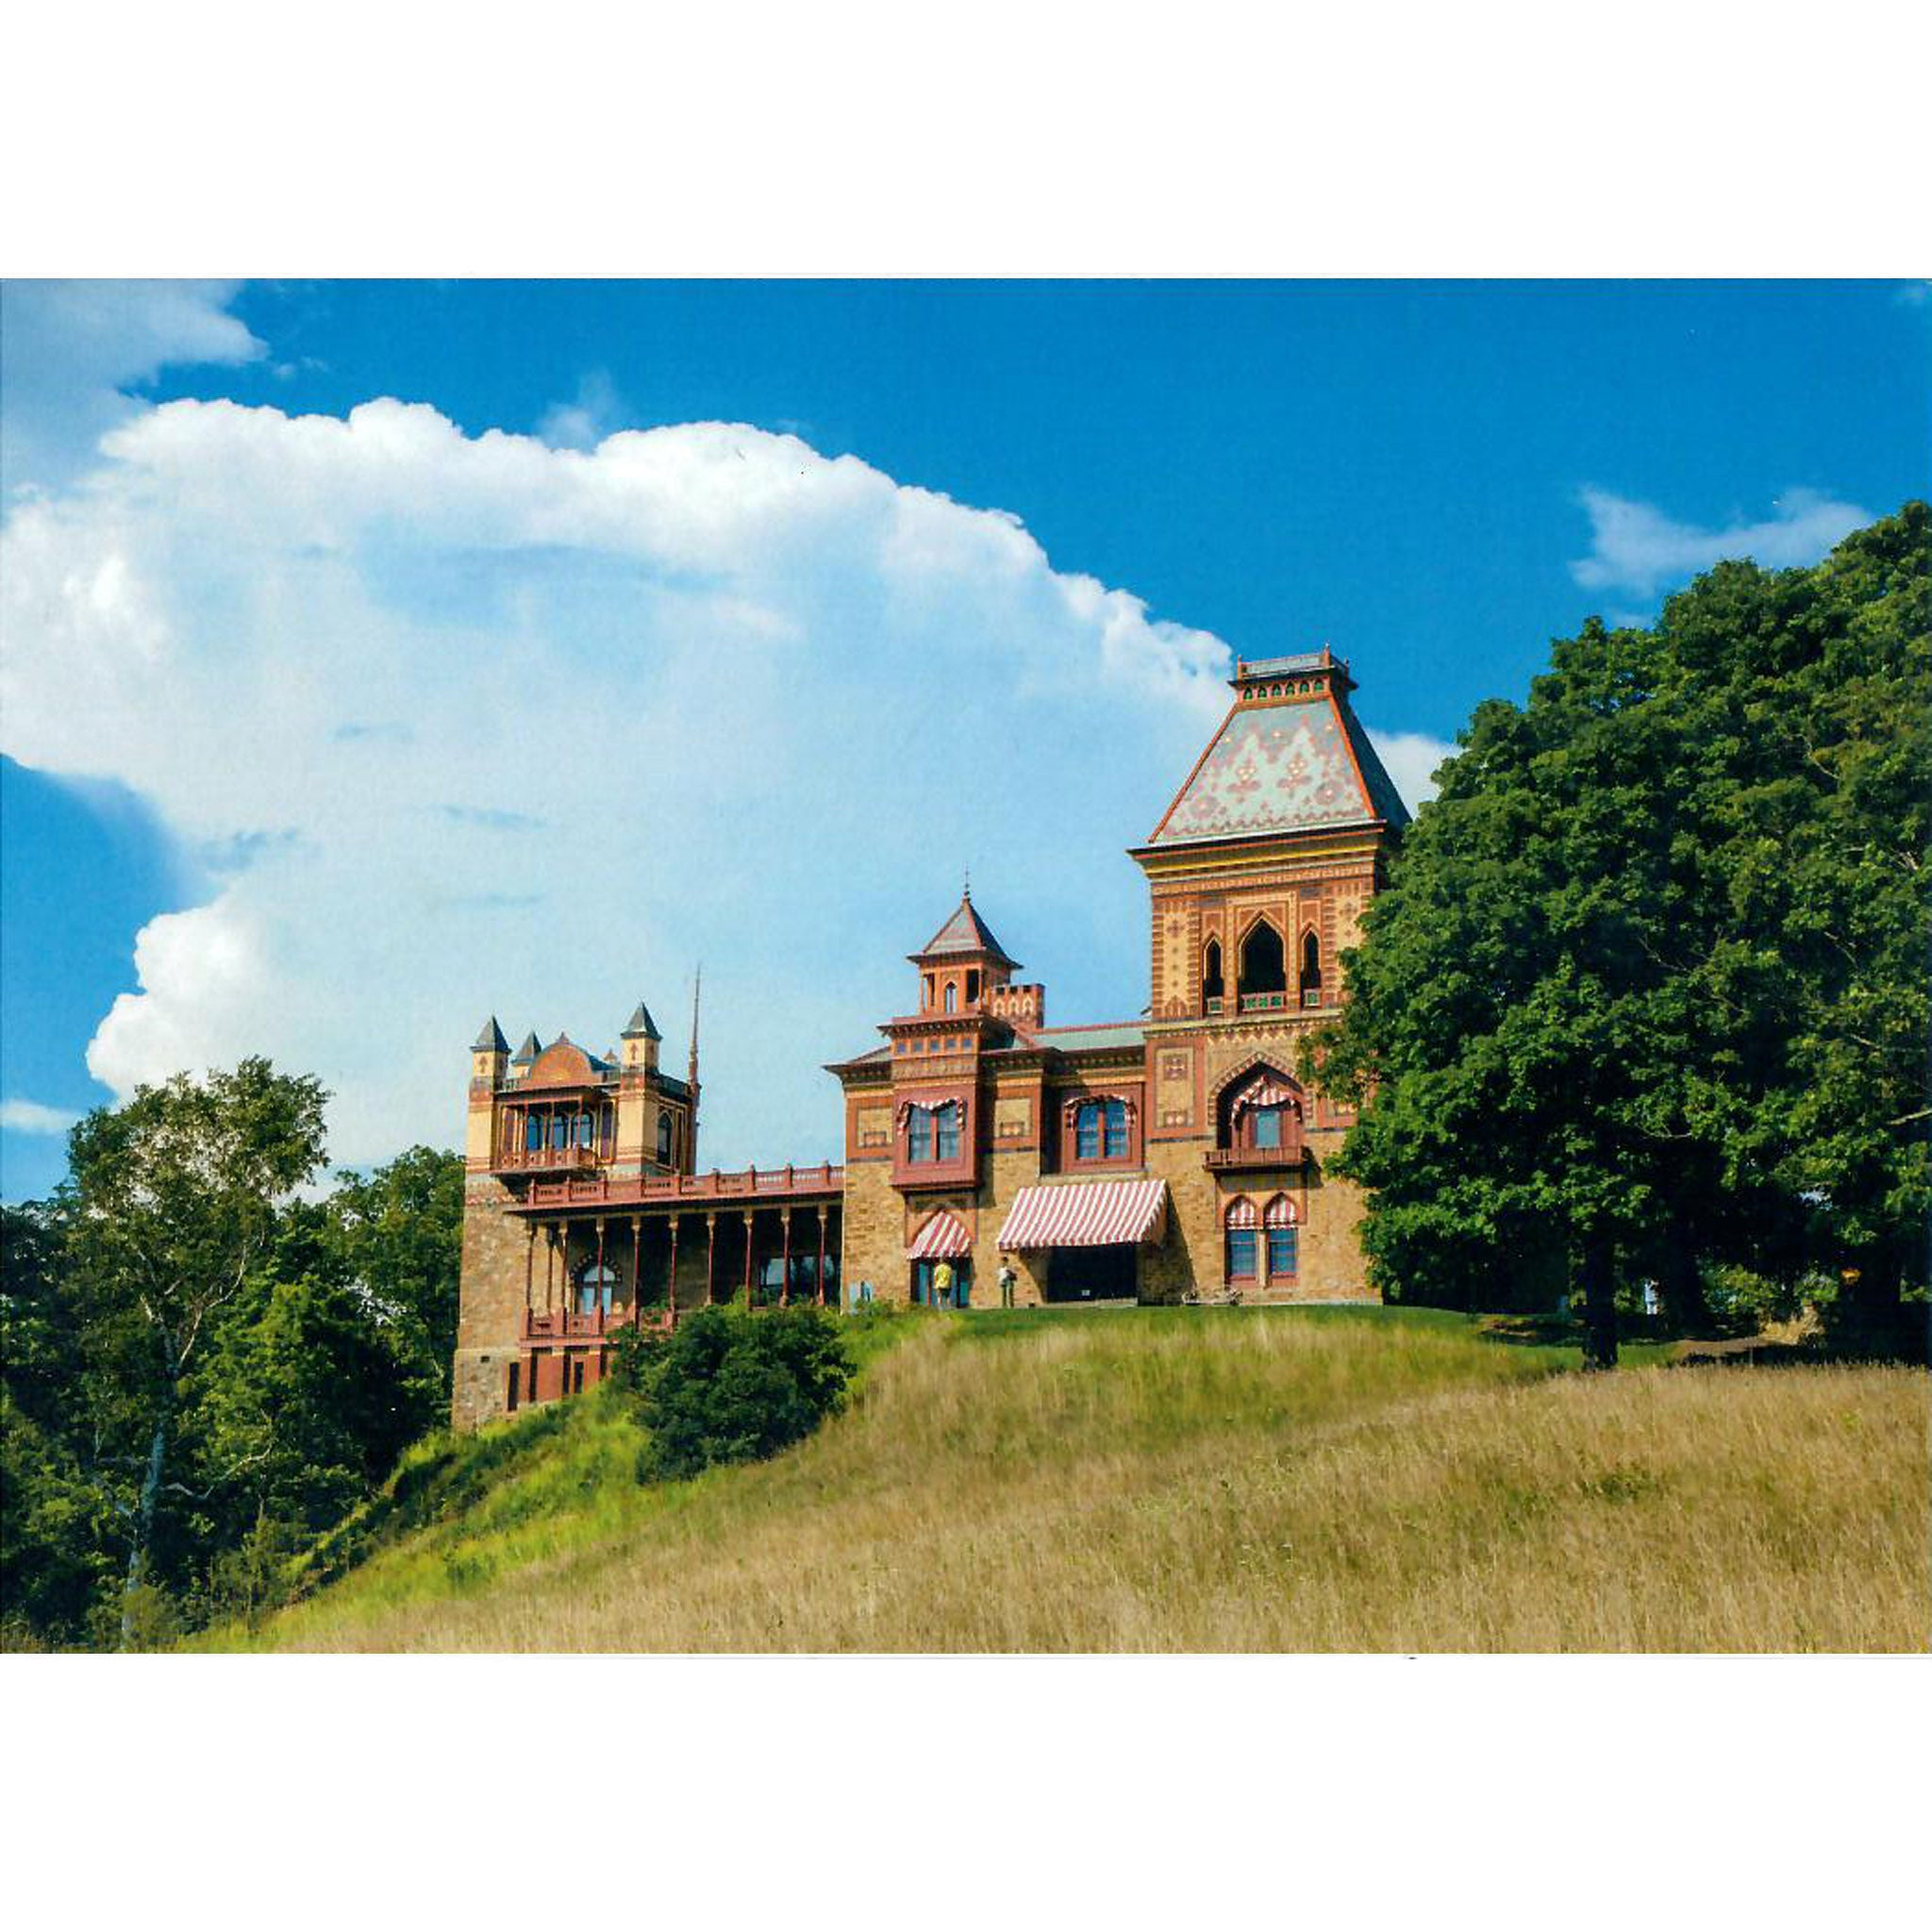 Clouds over Main House Notecard